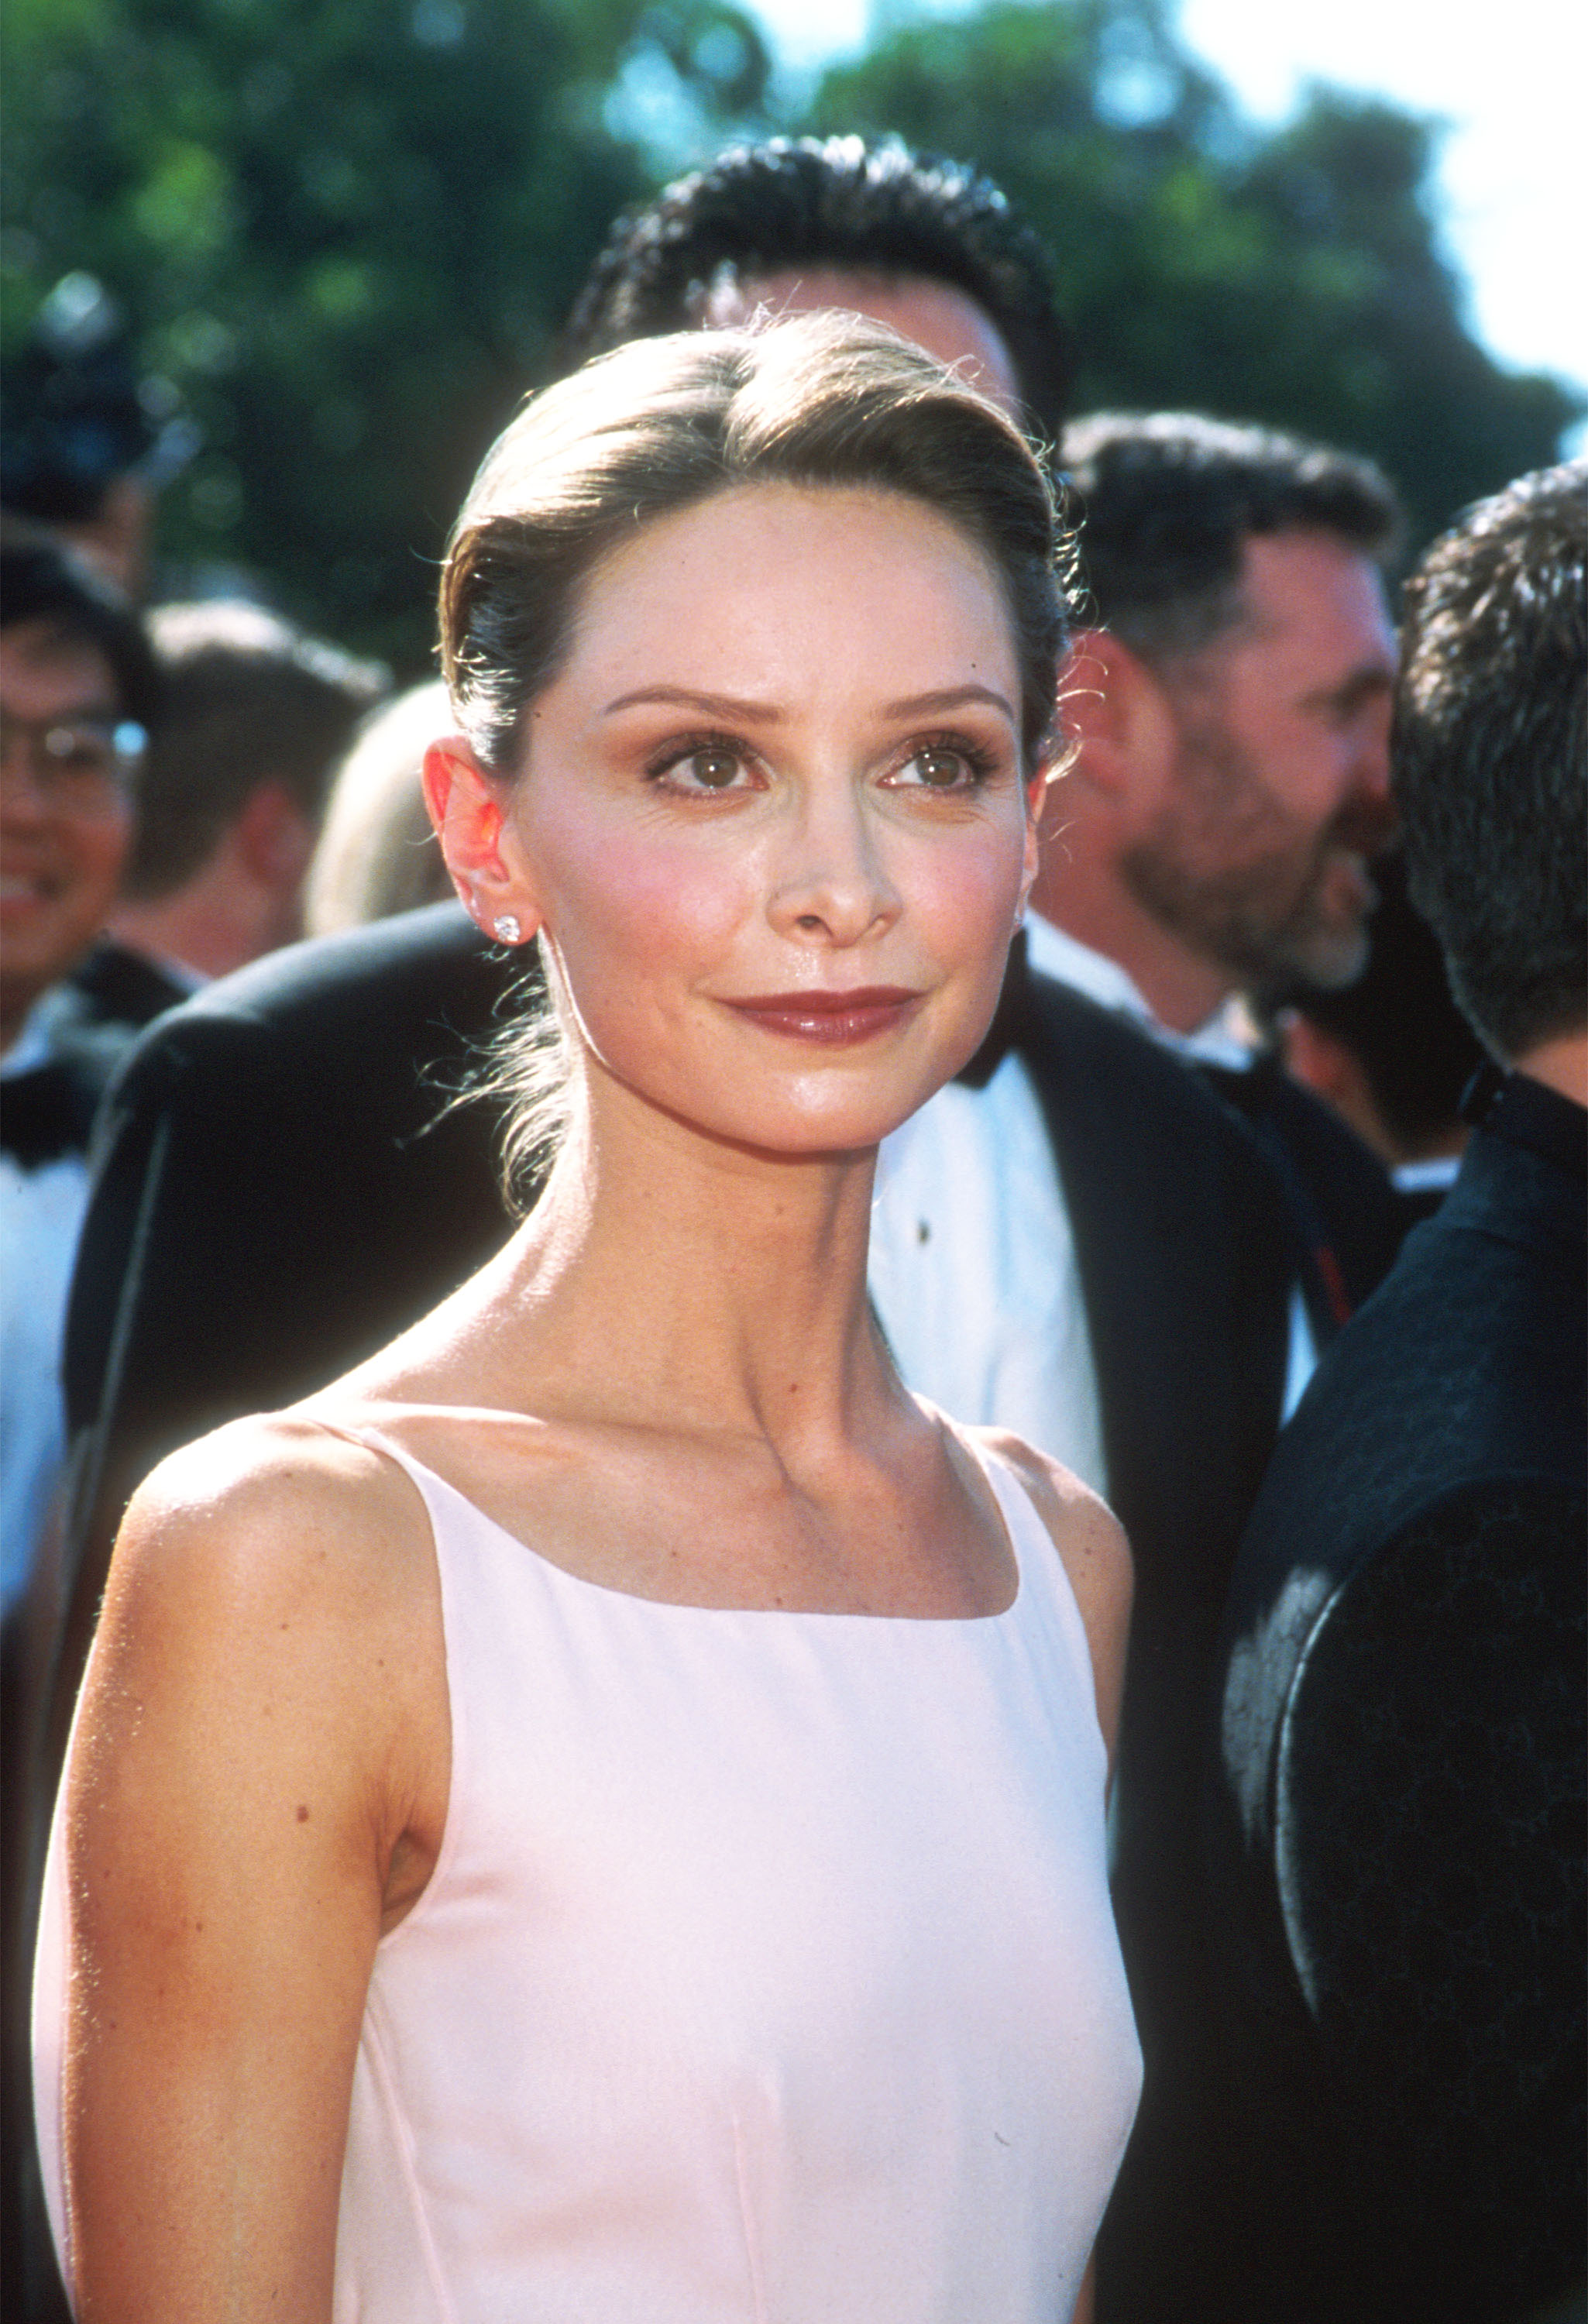 Actress Calista Flockhart arrives at the 1998 Emmy Awards in Los Angeles, CA on September 13, 1998.